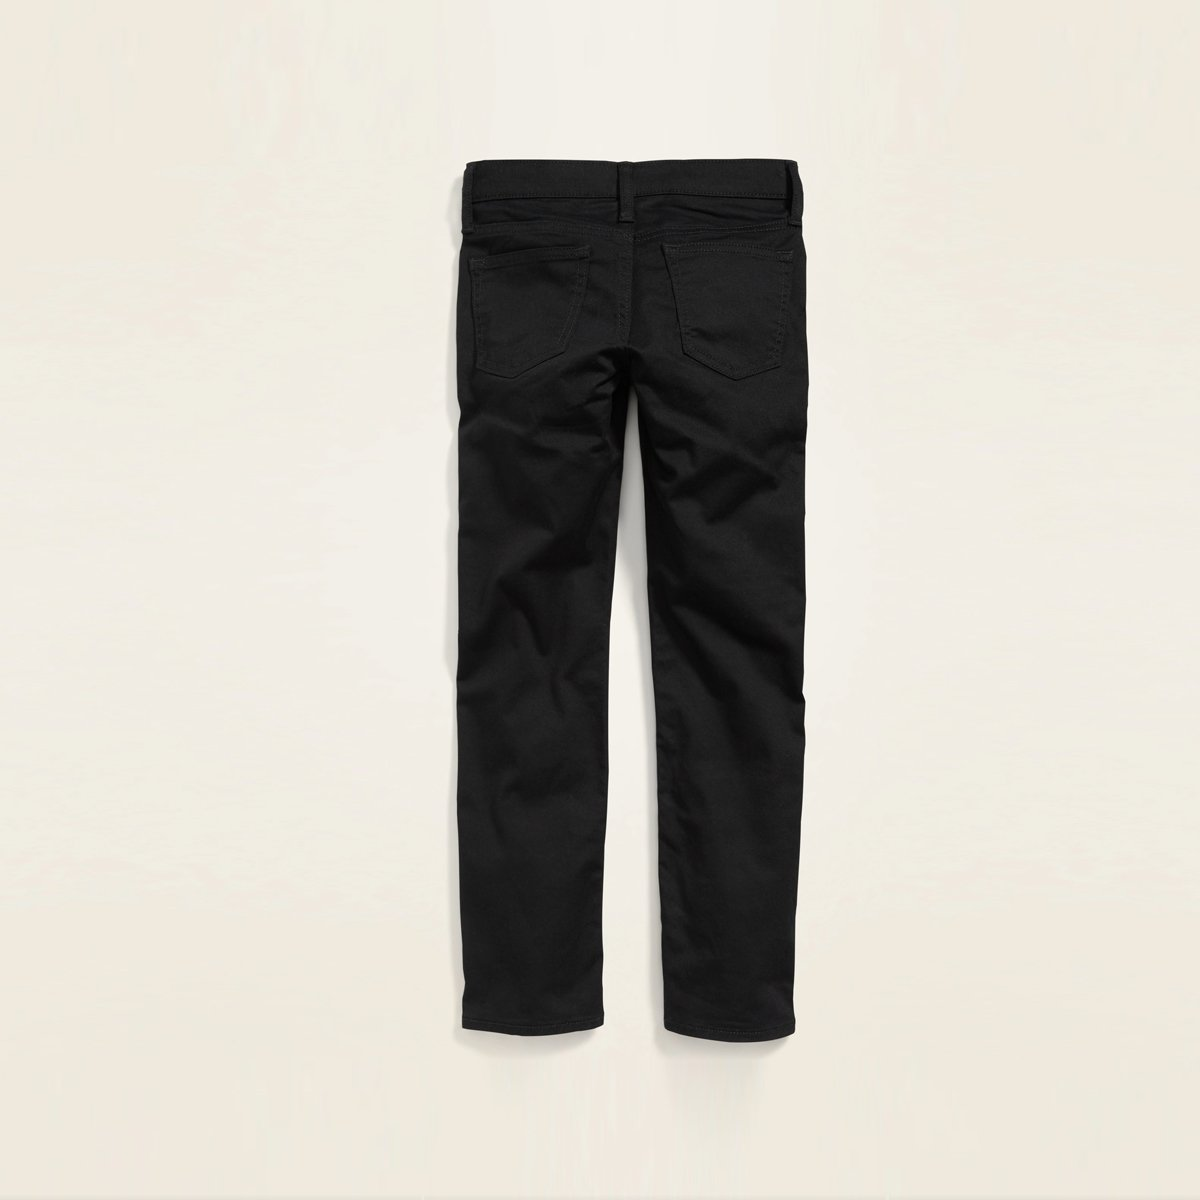 Exclusive Built-In Flex Jet Black Cotton Twill Pant for Boys (21051)